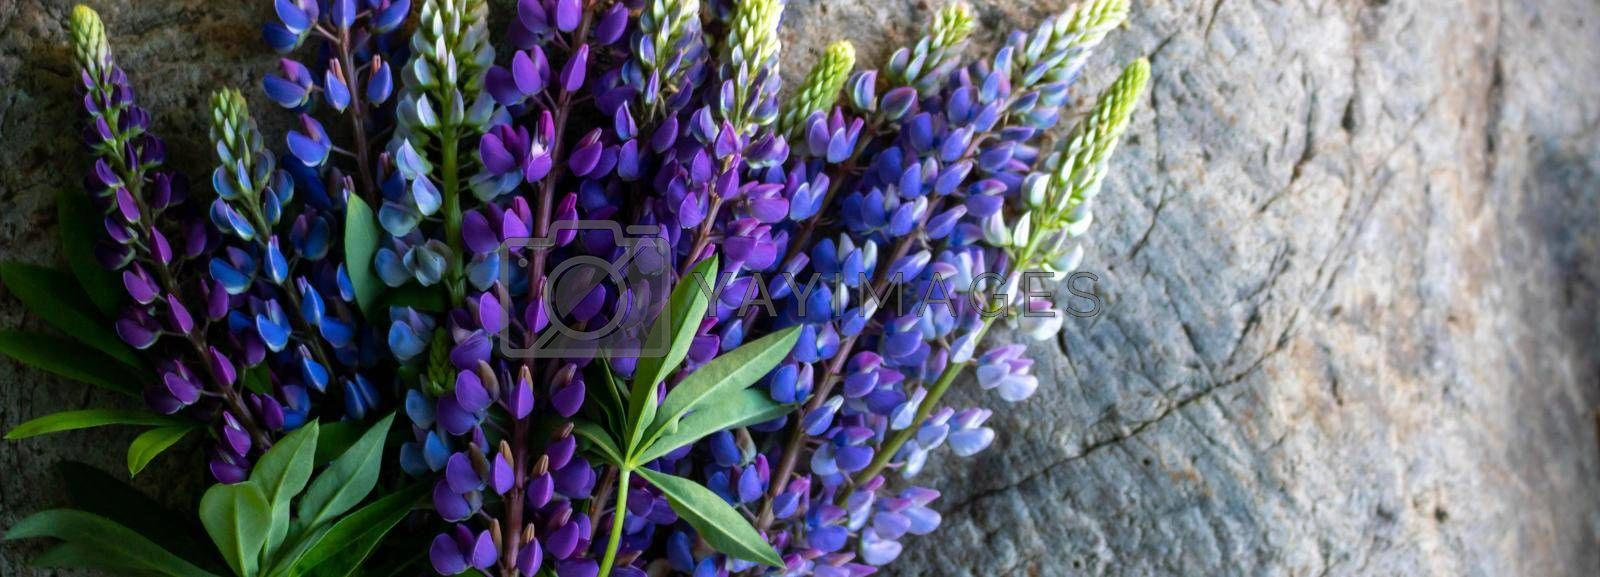 Panorama of a bouquet of lupines isolated against a background of gray stone.